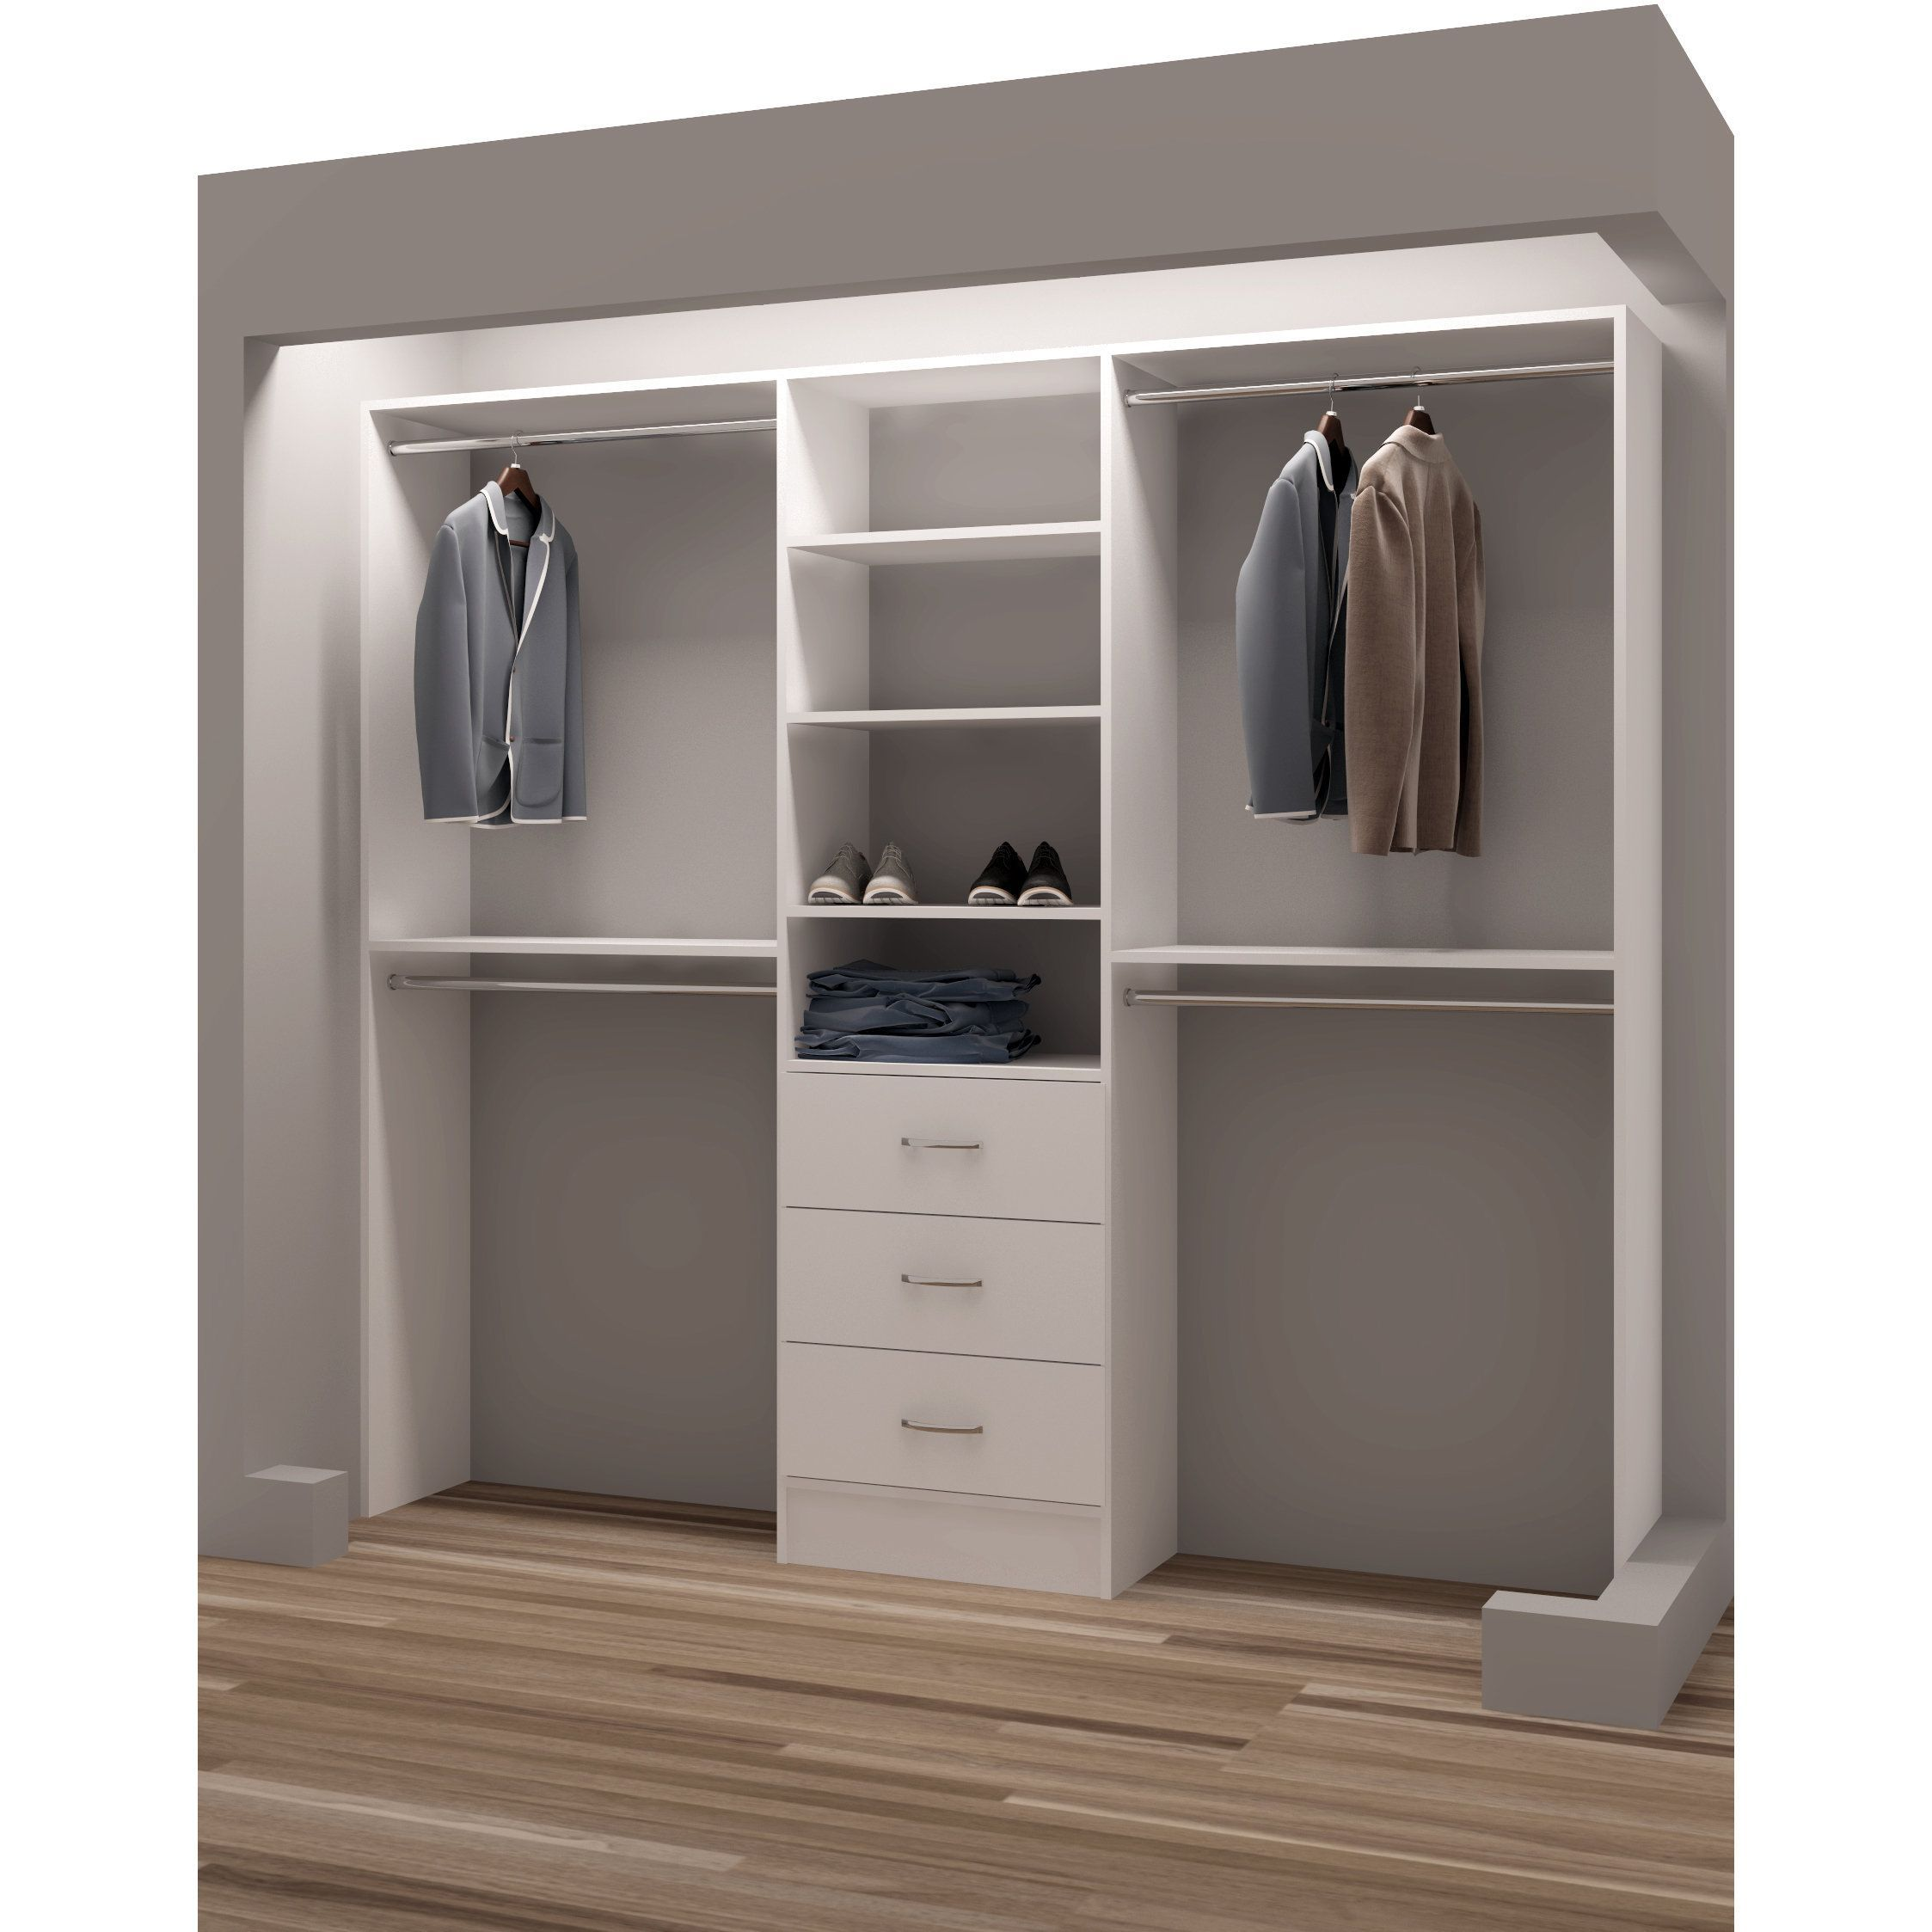 Awesome Closet Ideas Part - 13: TidySquares Classic White Wood 87-inch Reach-in Closet Organizer (White)  (Chrome)